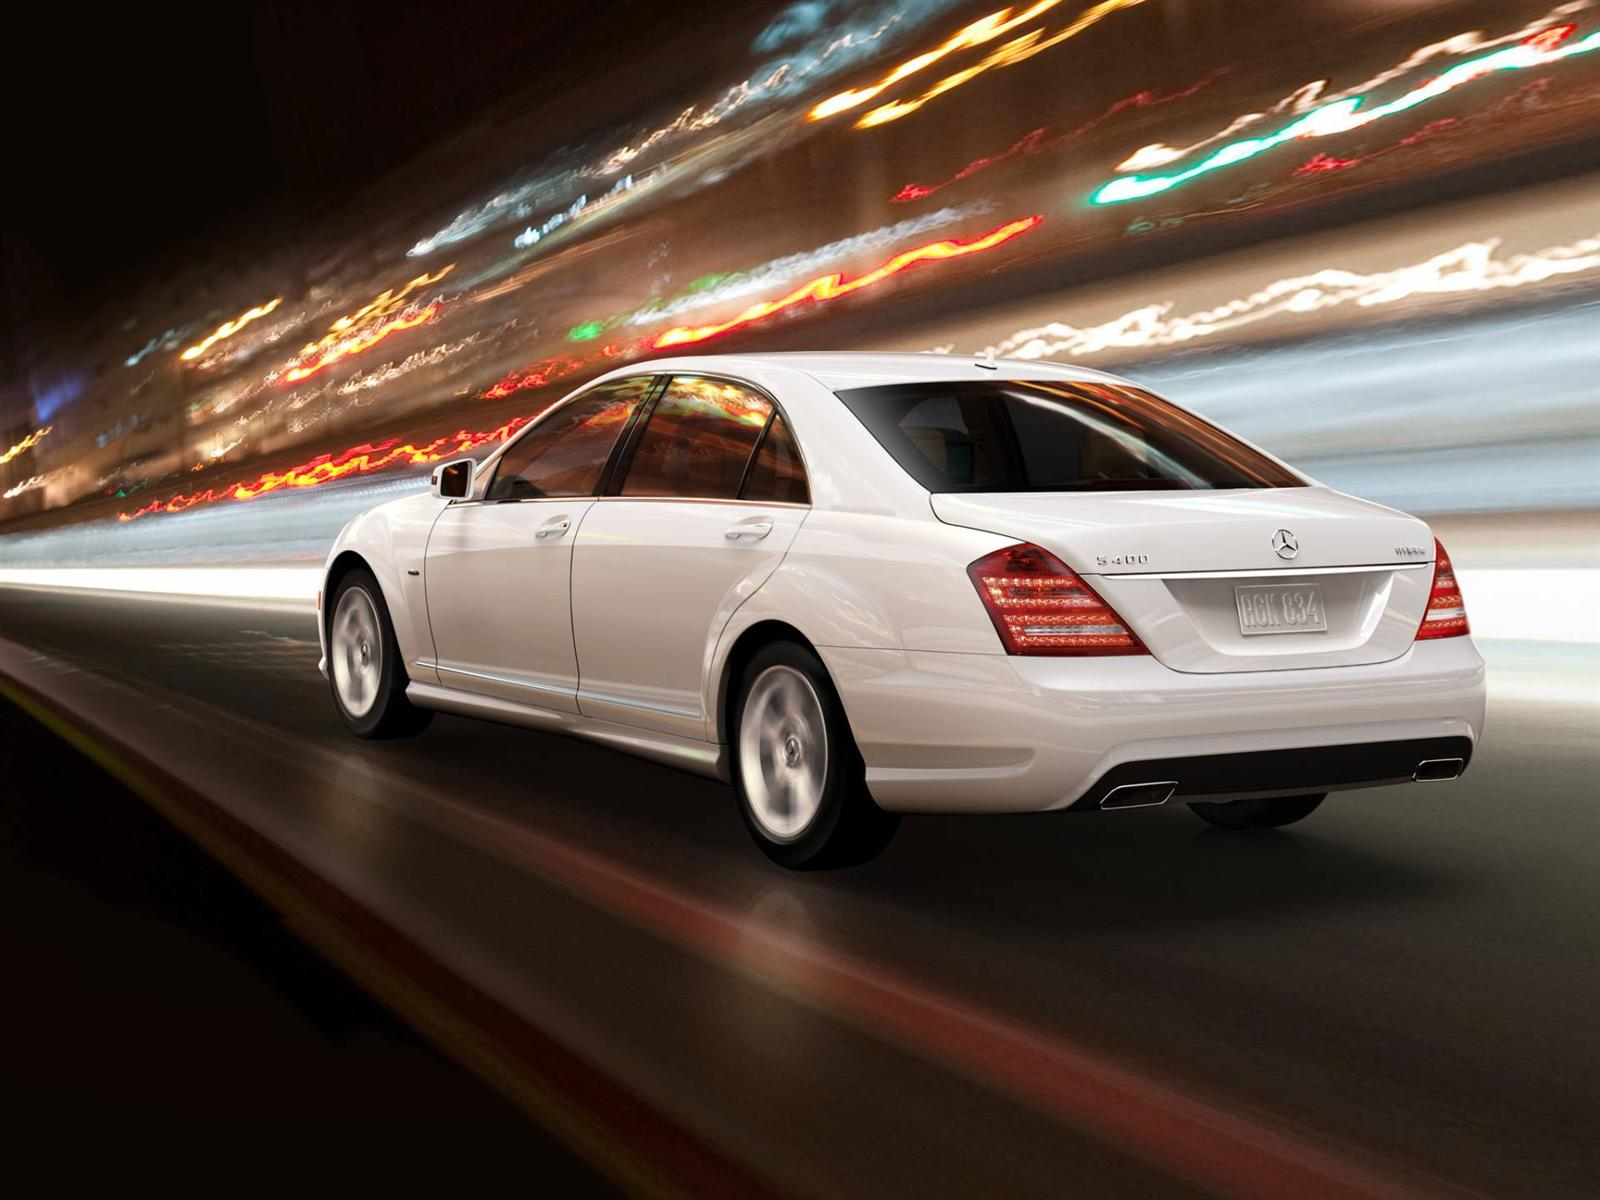 2013 mercedes benz s400 hybrid image https www for 2013 mercedes benz s400 hybrid